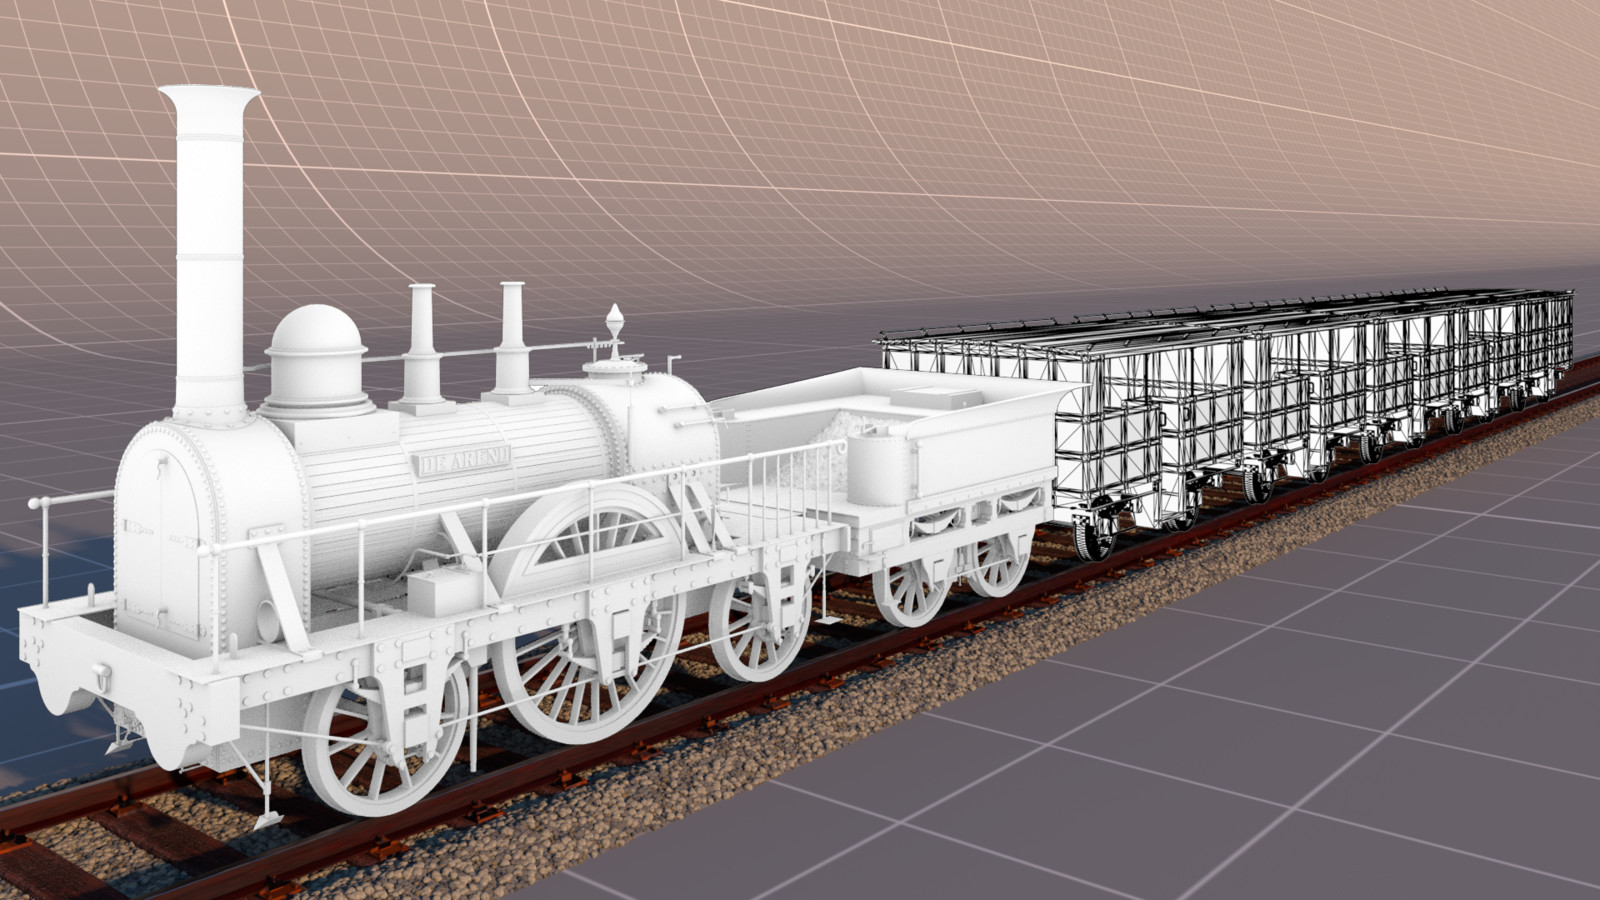 (WIP) De Arend - First train in the Netherlands (1839)